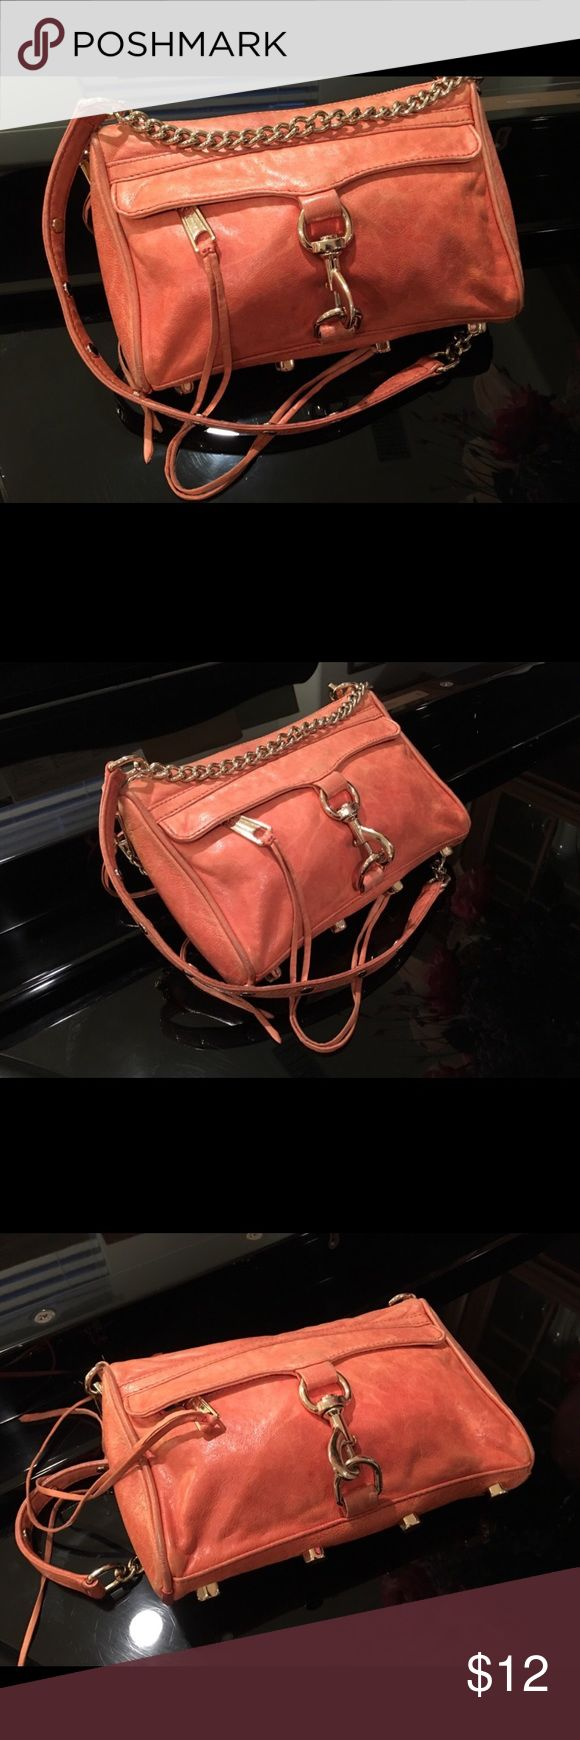 Crossbody bag from Rebecca Minkoff! Pop up your wardrobe with this stylish cute Crossbody bag!  Perfect weekend casual bag you can take along to just about anywhere! Rebecca Minkoff Bags Crossbody Bags